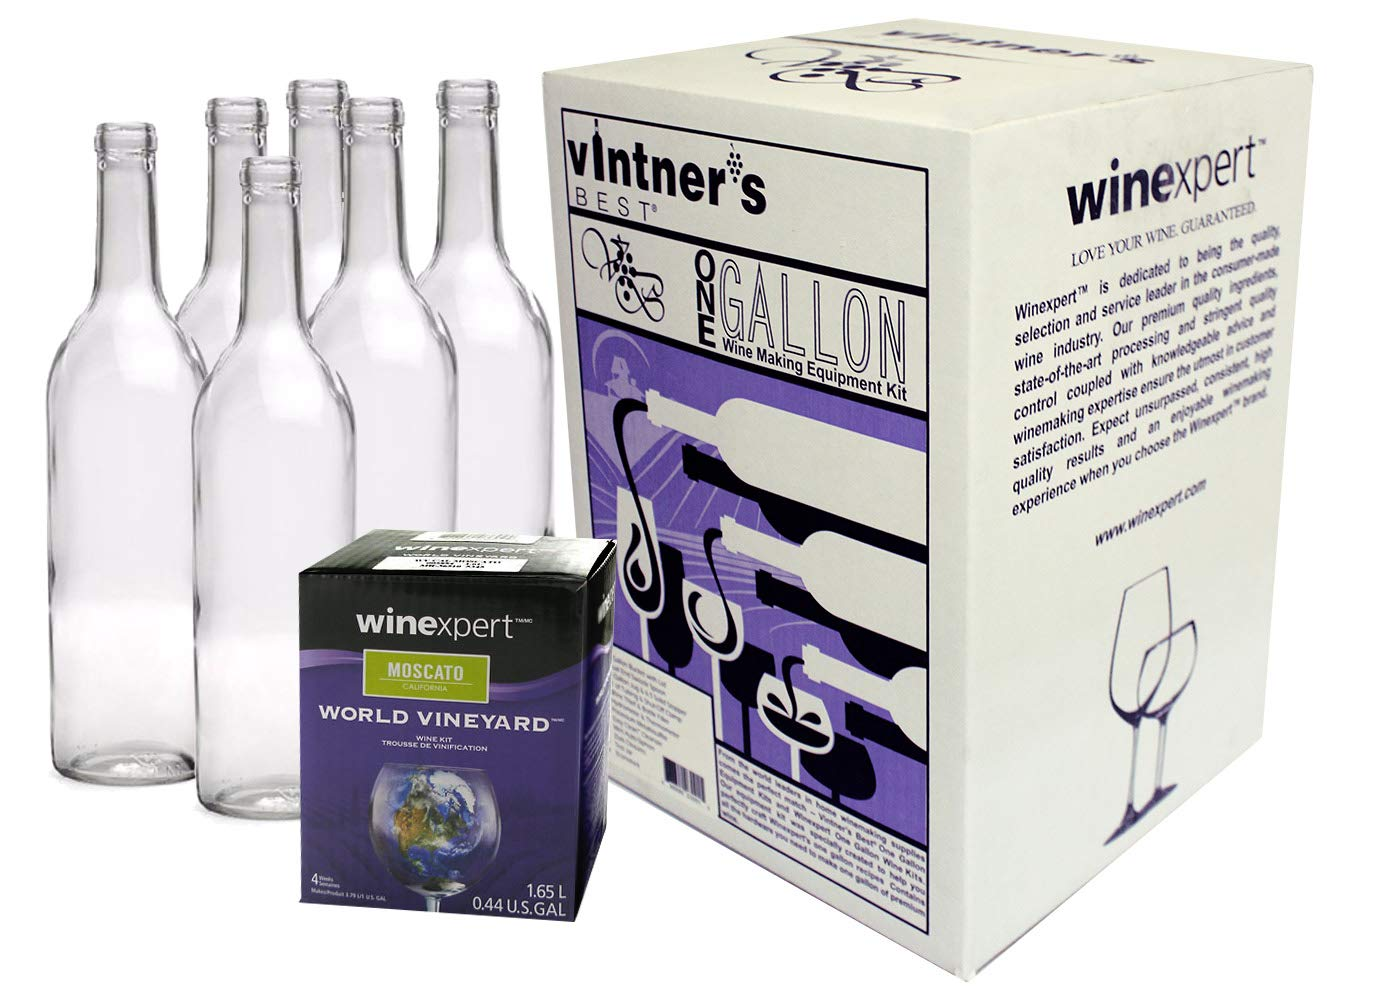 Home Brew Ohio Win expert One Bargain and Equipment Kit gal Ingredi Wine Cheap mail order specialty store